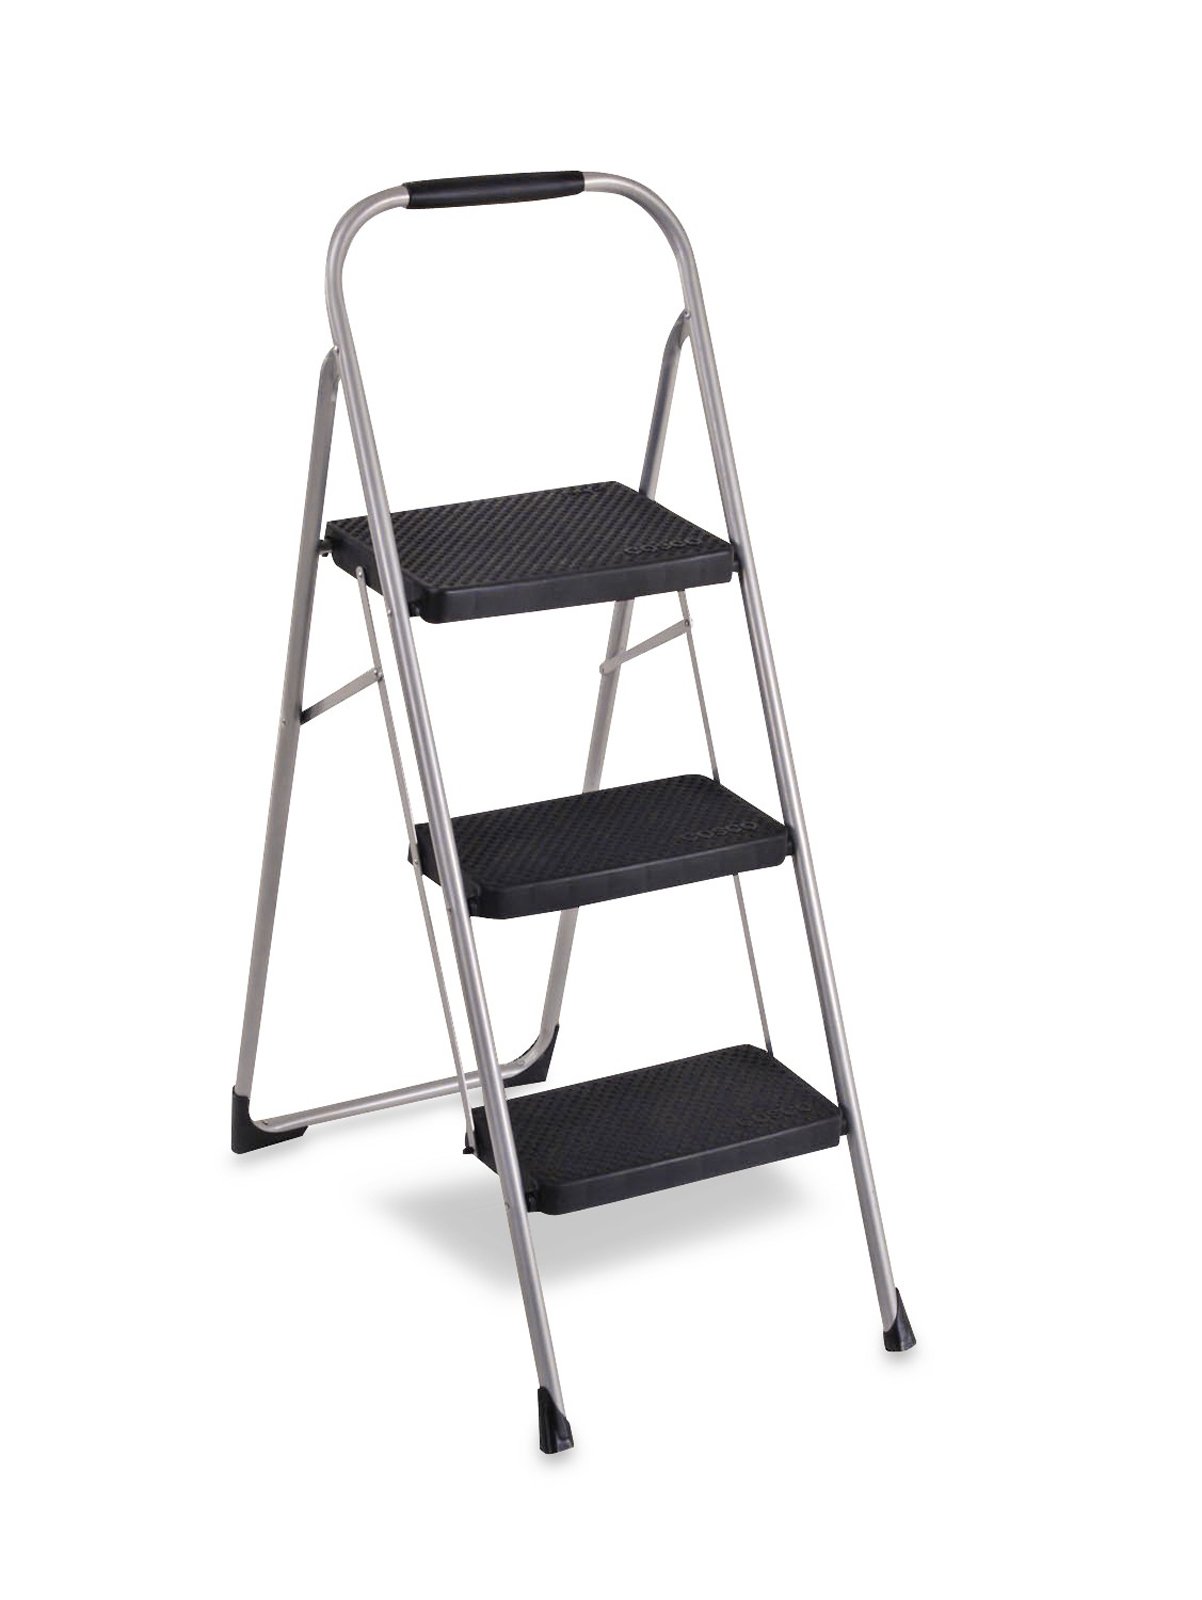 Cosco Home And Office Products 3 Step Big Step Stool 044681119088 Make Household Tasks Less Of A Chore With These Handy Stools Folding Step Stool Step Stool